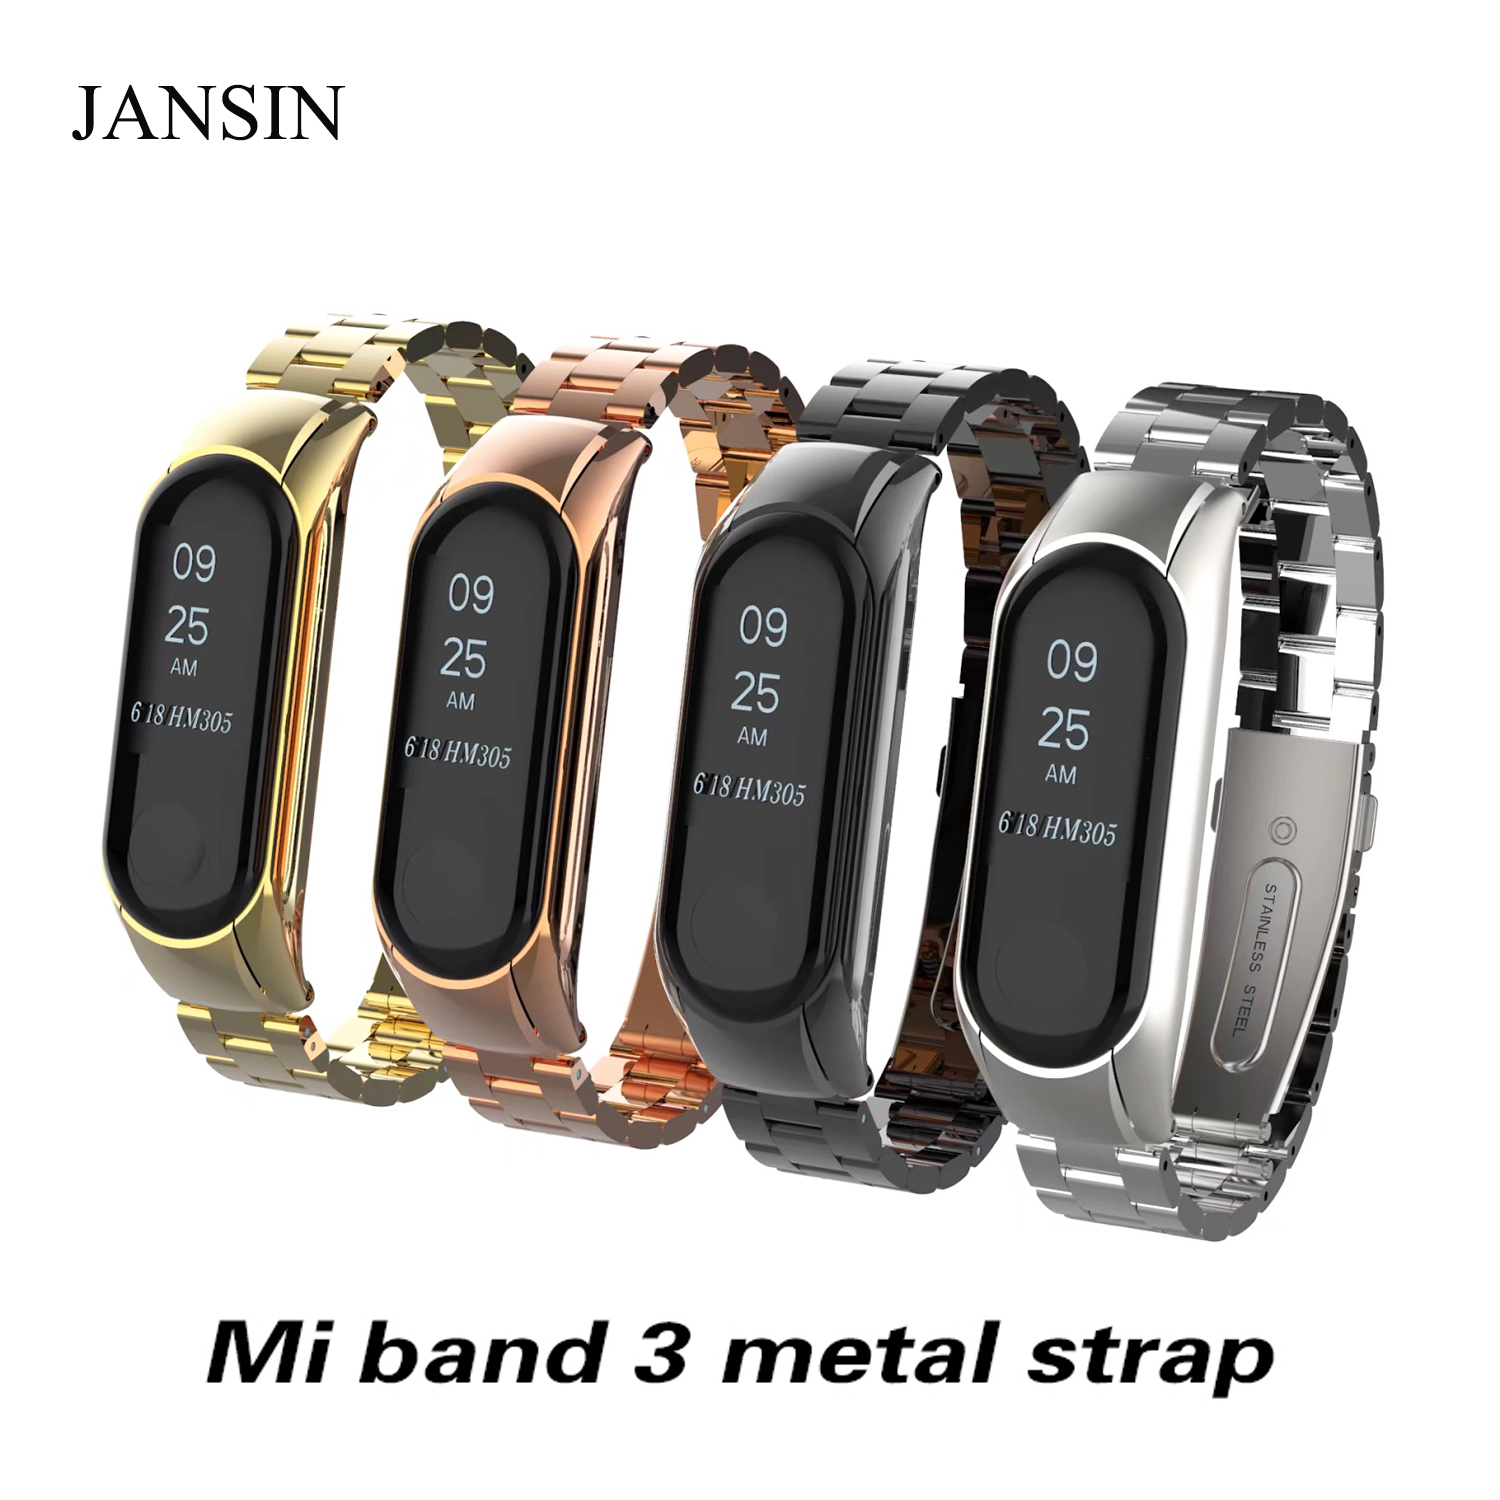 Xiao Mi Mi Band 3 Band Strap Sports Wrist Watch Metal Strap Bracelet For Mi 3 Smart Bracelet For Xiao Mi Band 3 Accessories